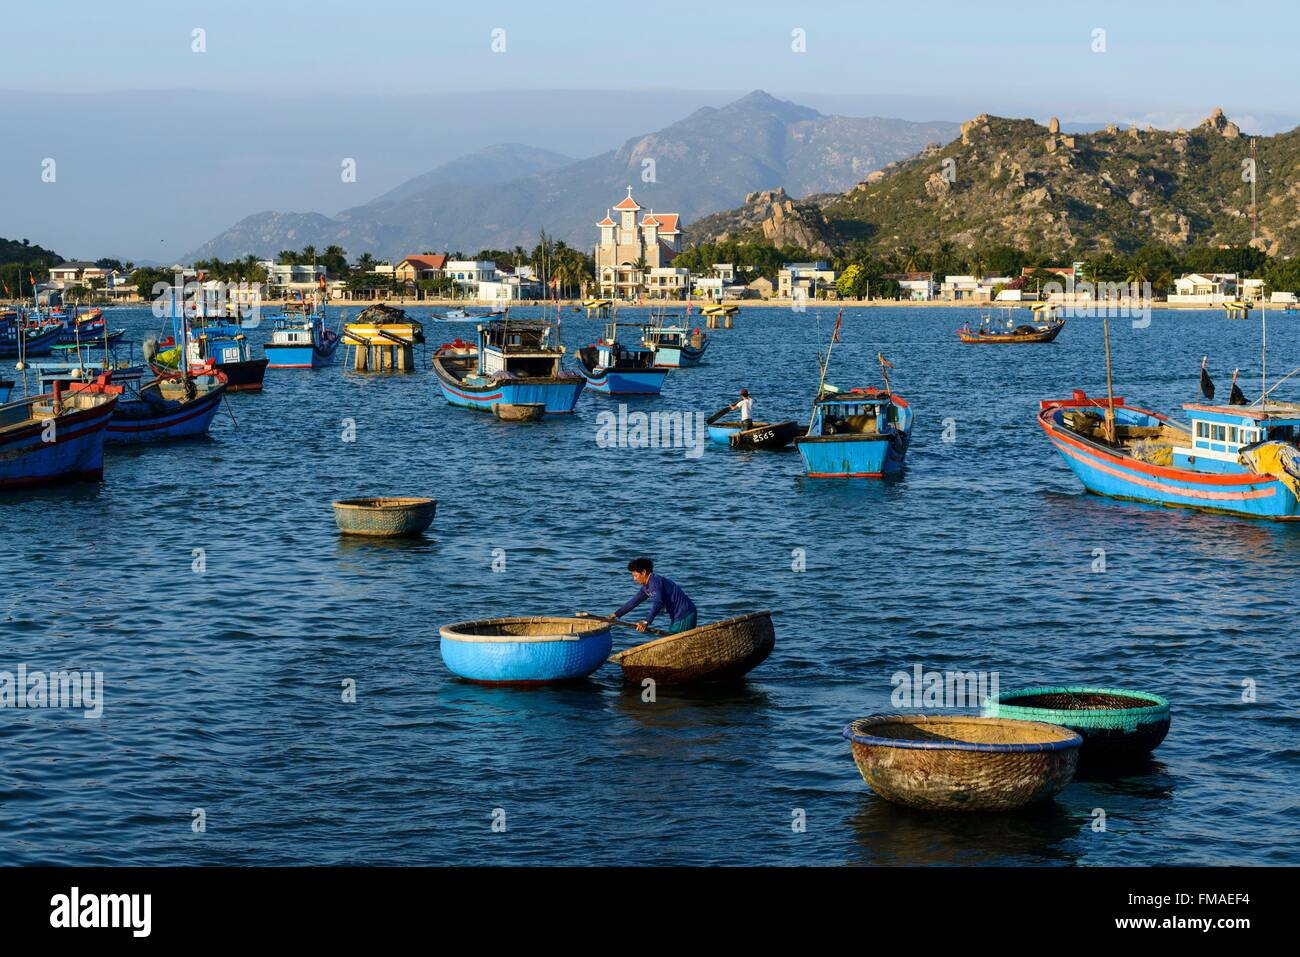 Vietnam, Ninh Thuan province, Phan Rang, the fishing port with the church in the background - Stock Image